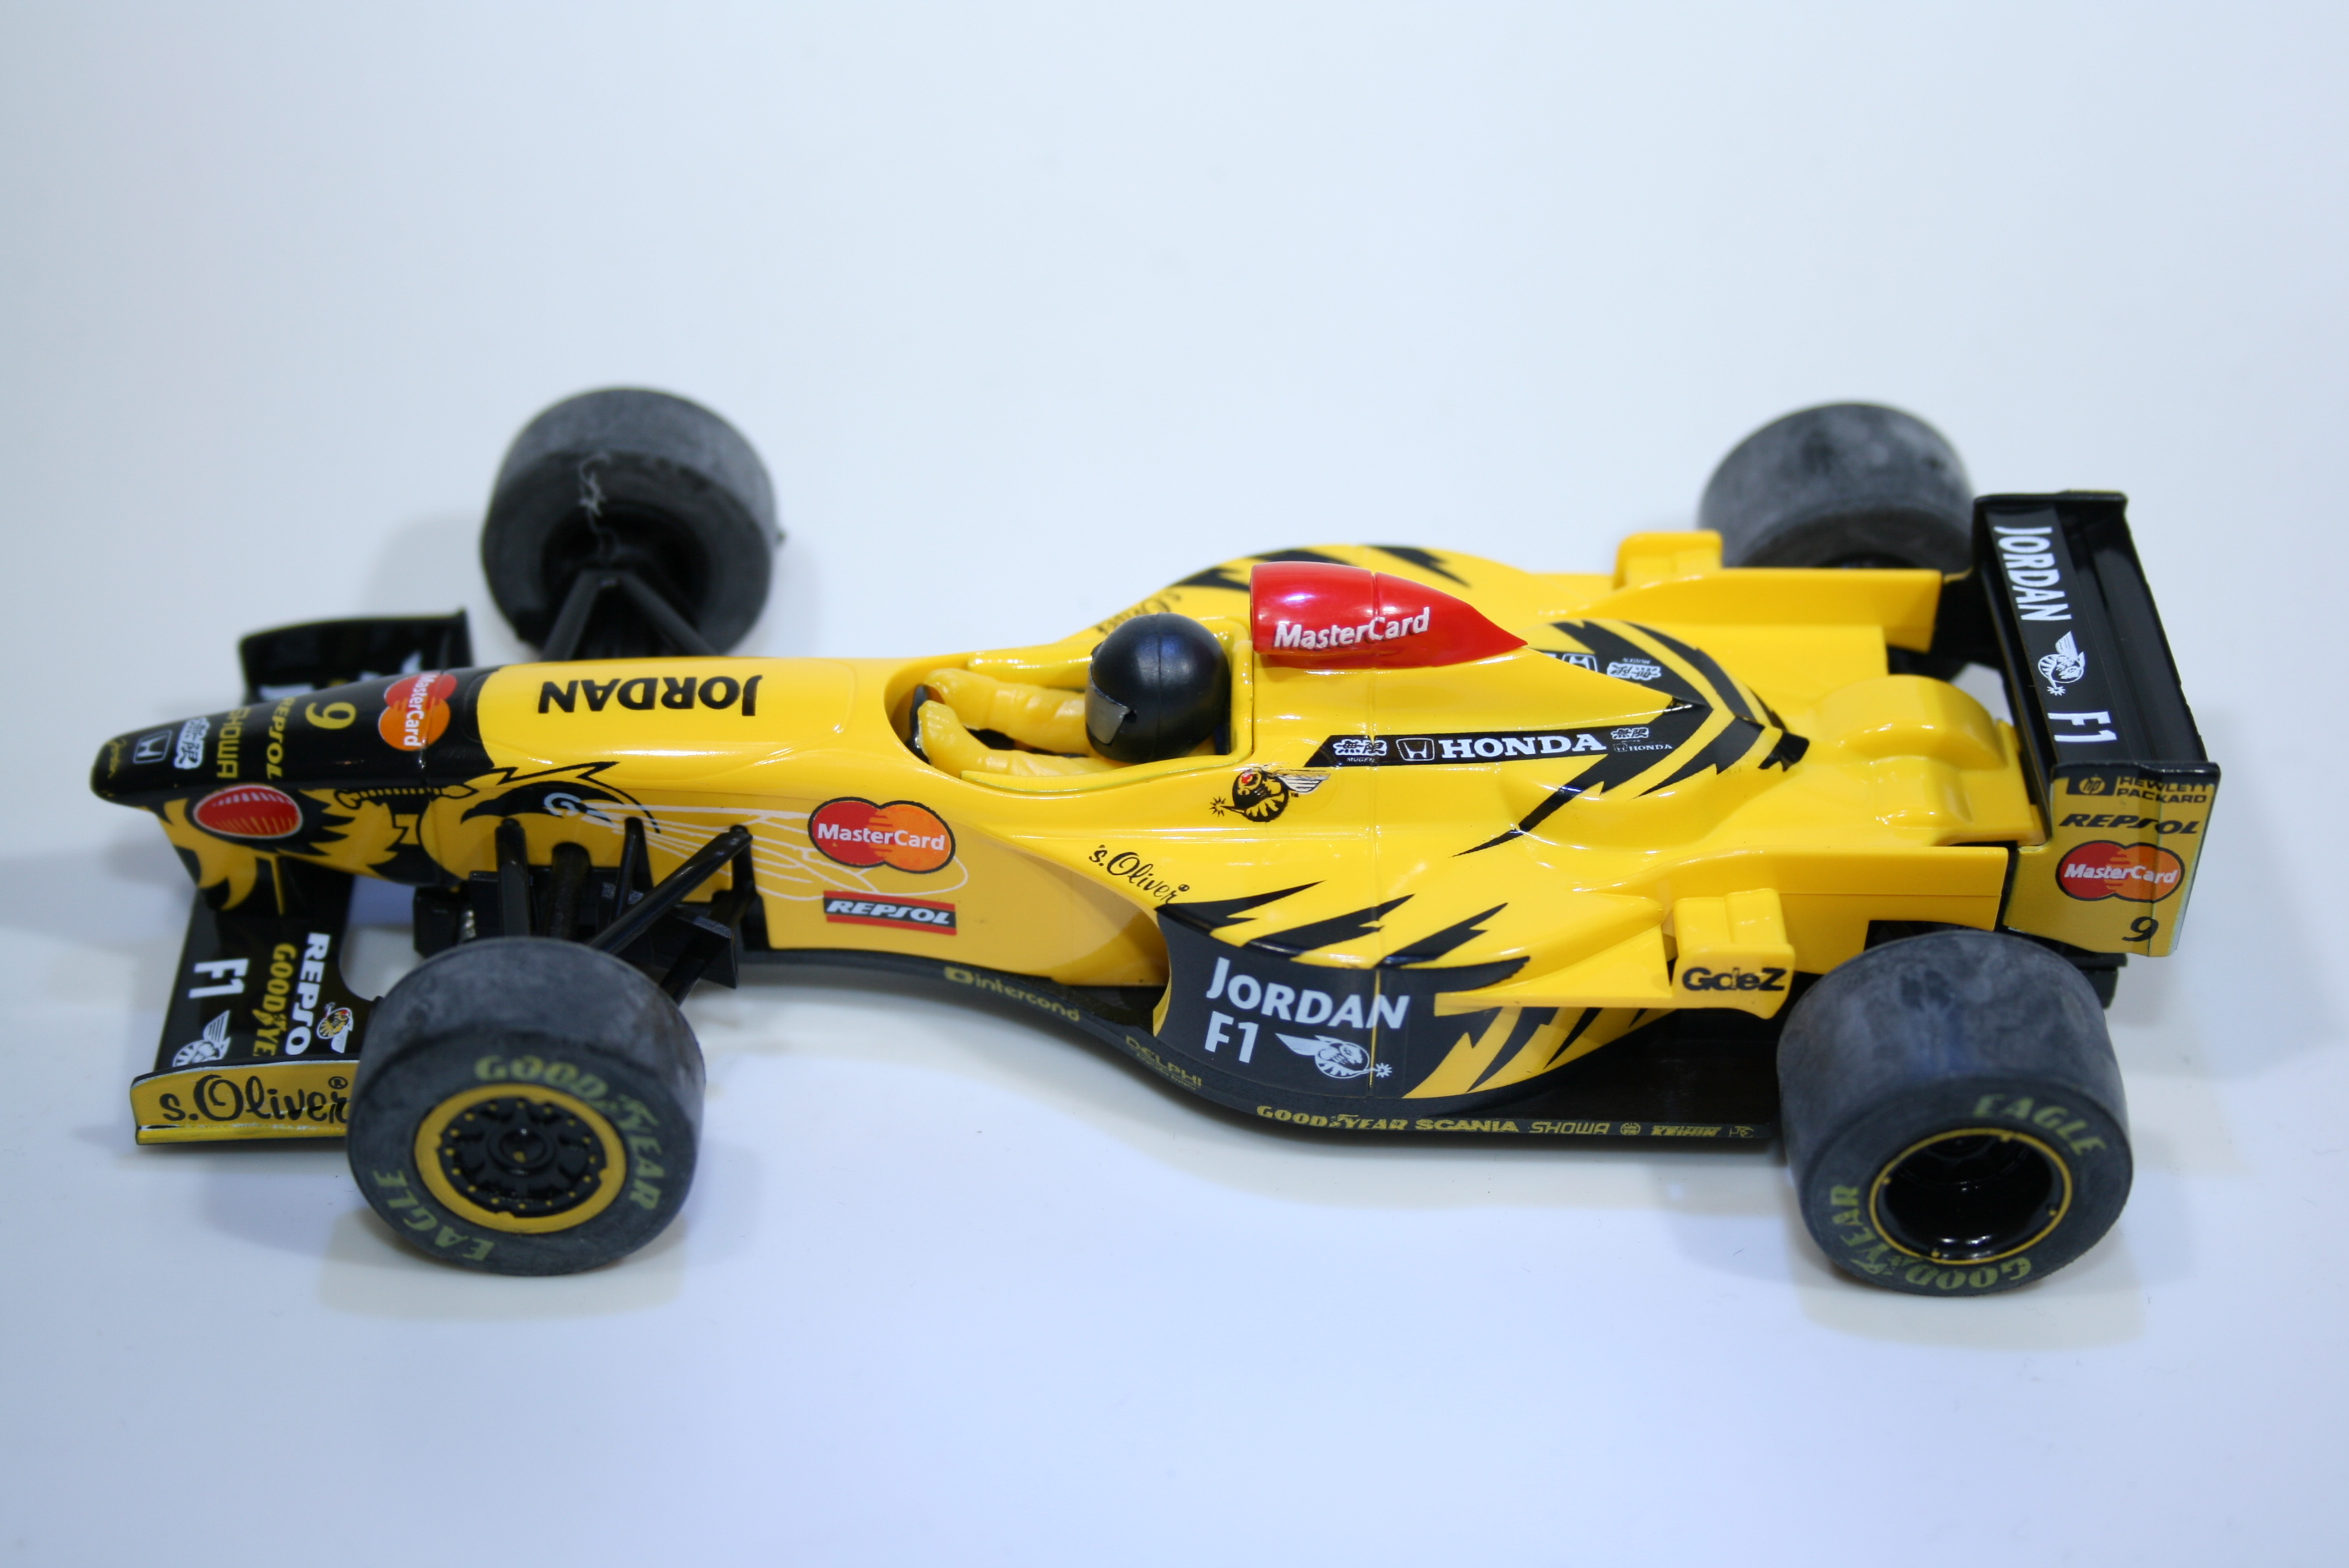 955 Jordan 198 1998 D Hill Scalextric C2126 1998 Boxed